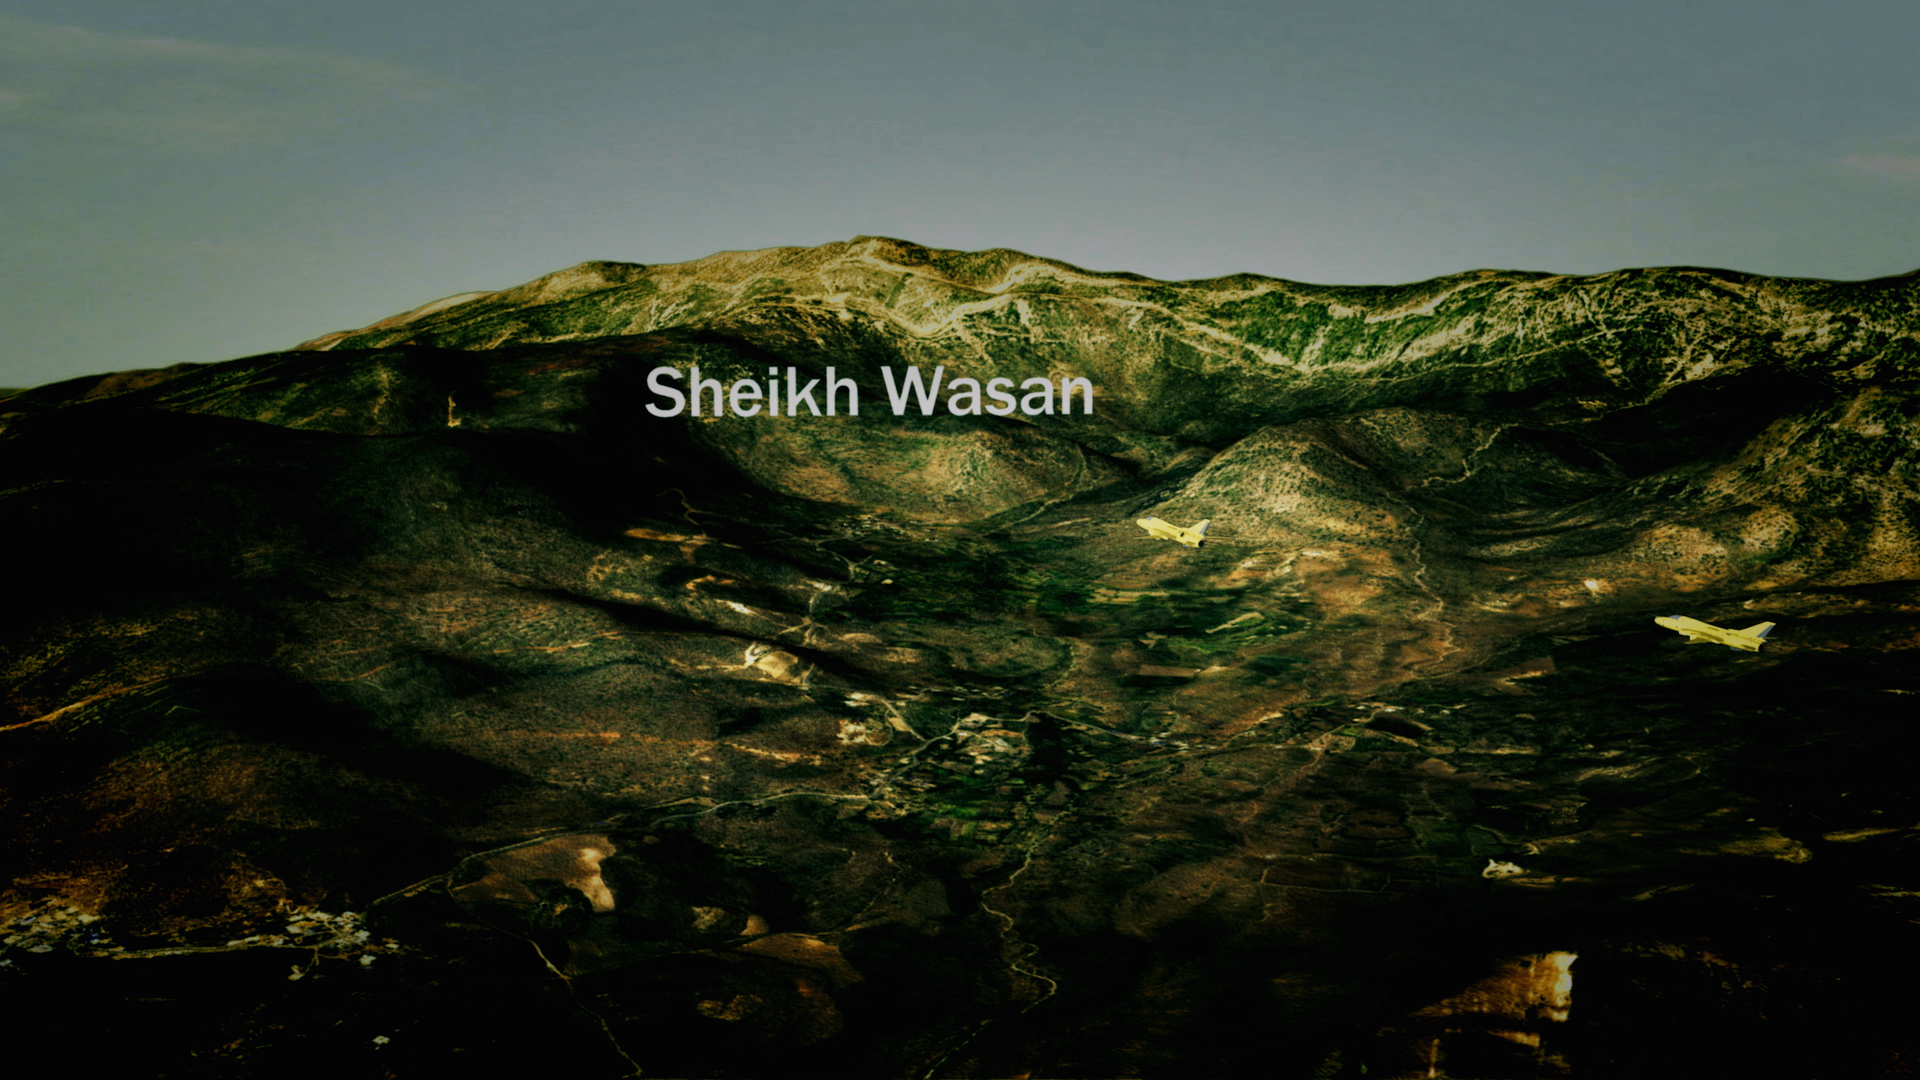 In this animation Iraqi jets drop chemical bombs on the villages of Sheikh Wasan in the Balisan valley, to the northeast of Erbil. The attack took place in the evening of 16 April 1987 as villagers returned home from the fields. The Iraqis bombed the village at supper time to maximise casualties.